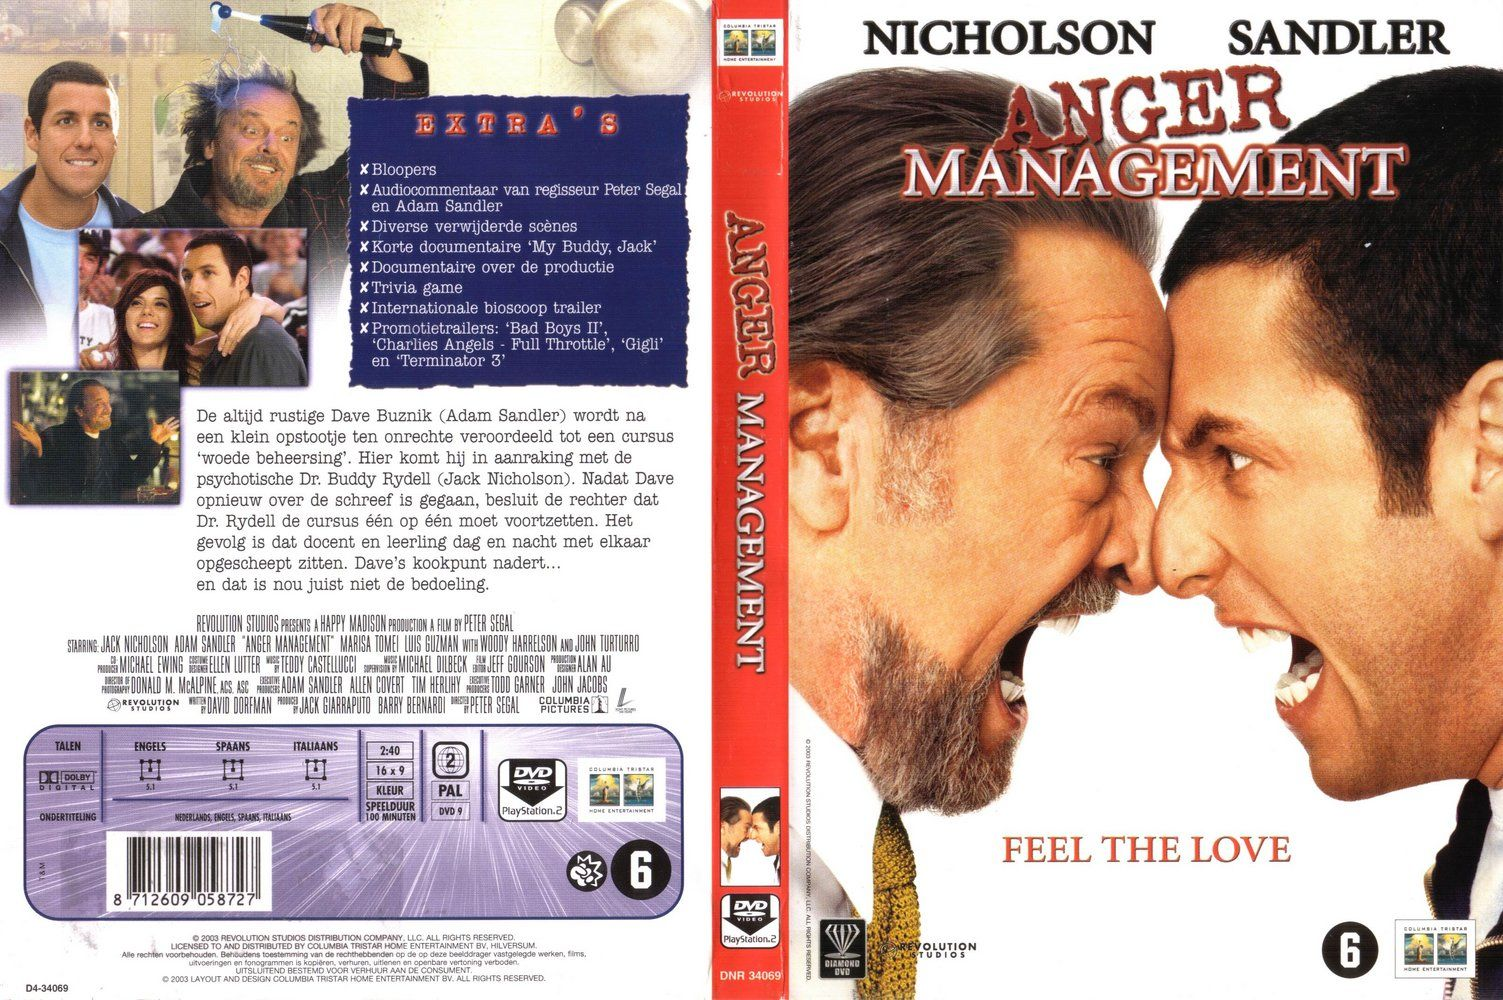 Anger Management Dvd Nl Dvd Covers Cover Century Over 500 000 Album Art Covers For Free